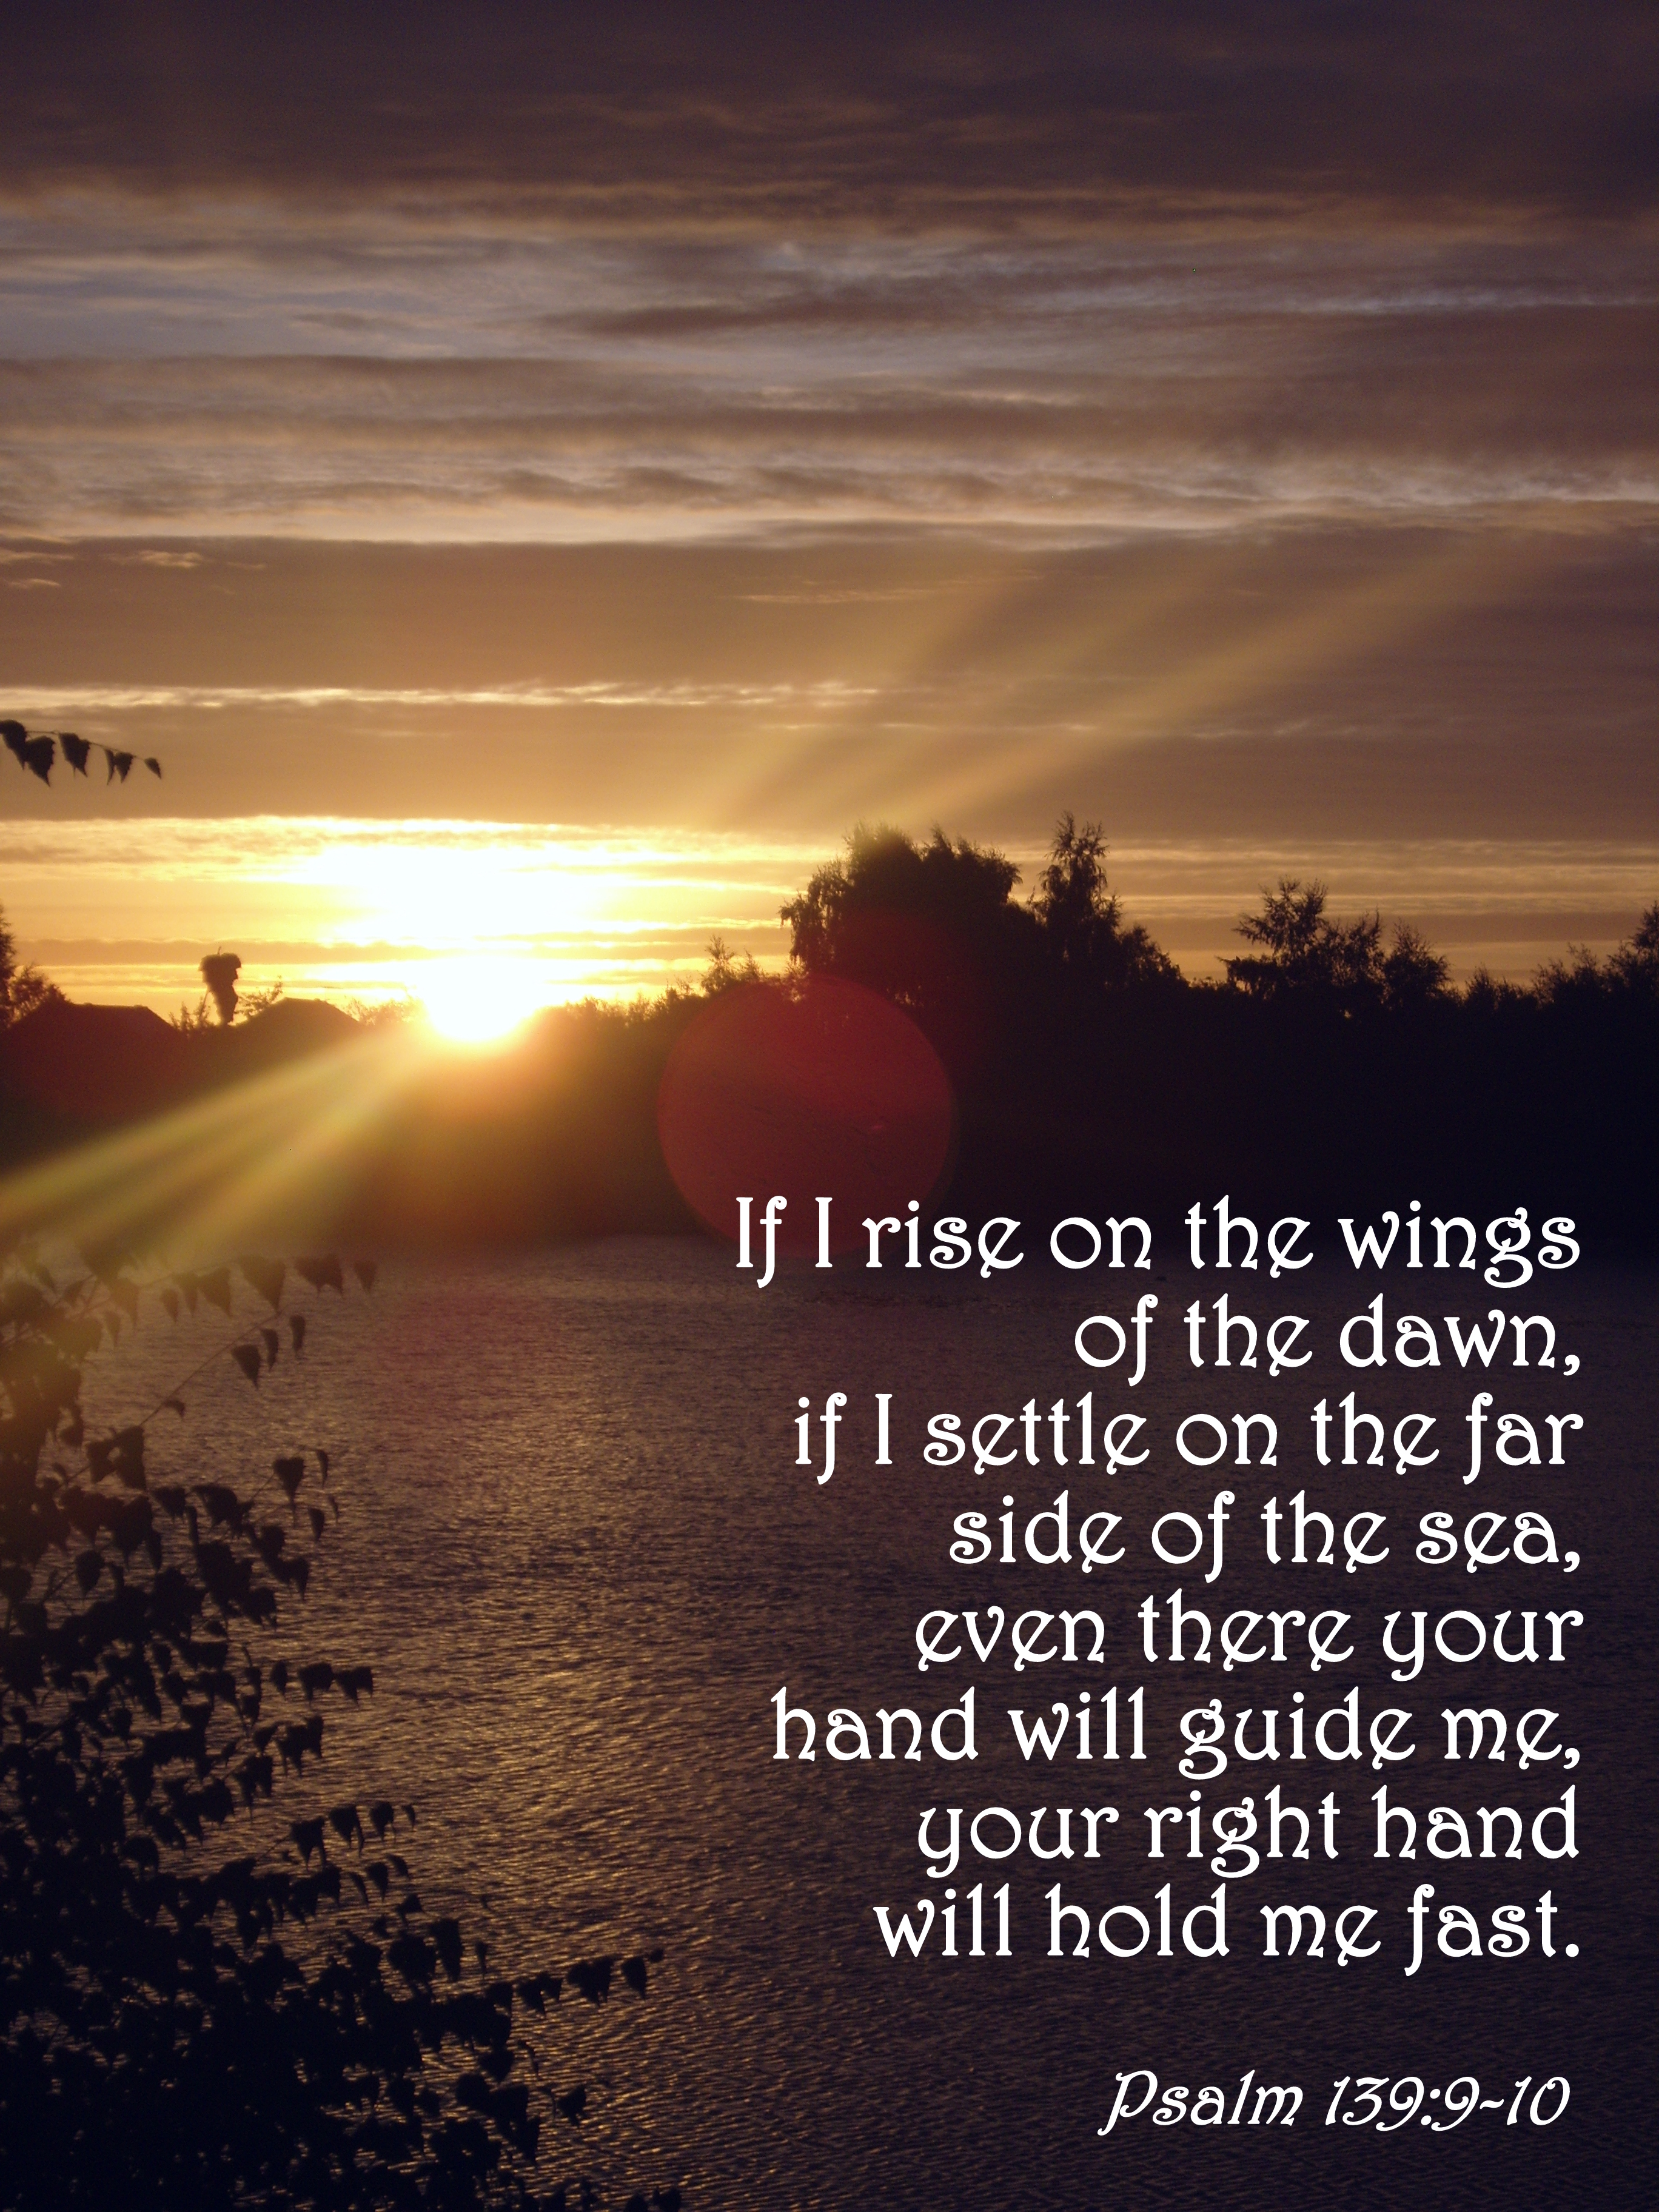 Fly To Distant Shores – Psalm 139:9-10